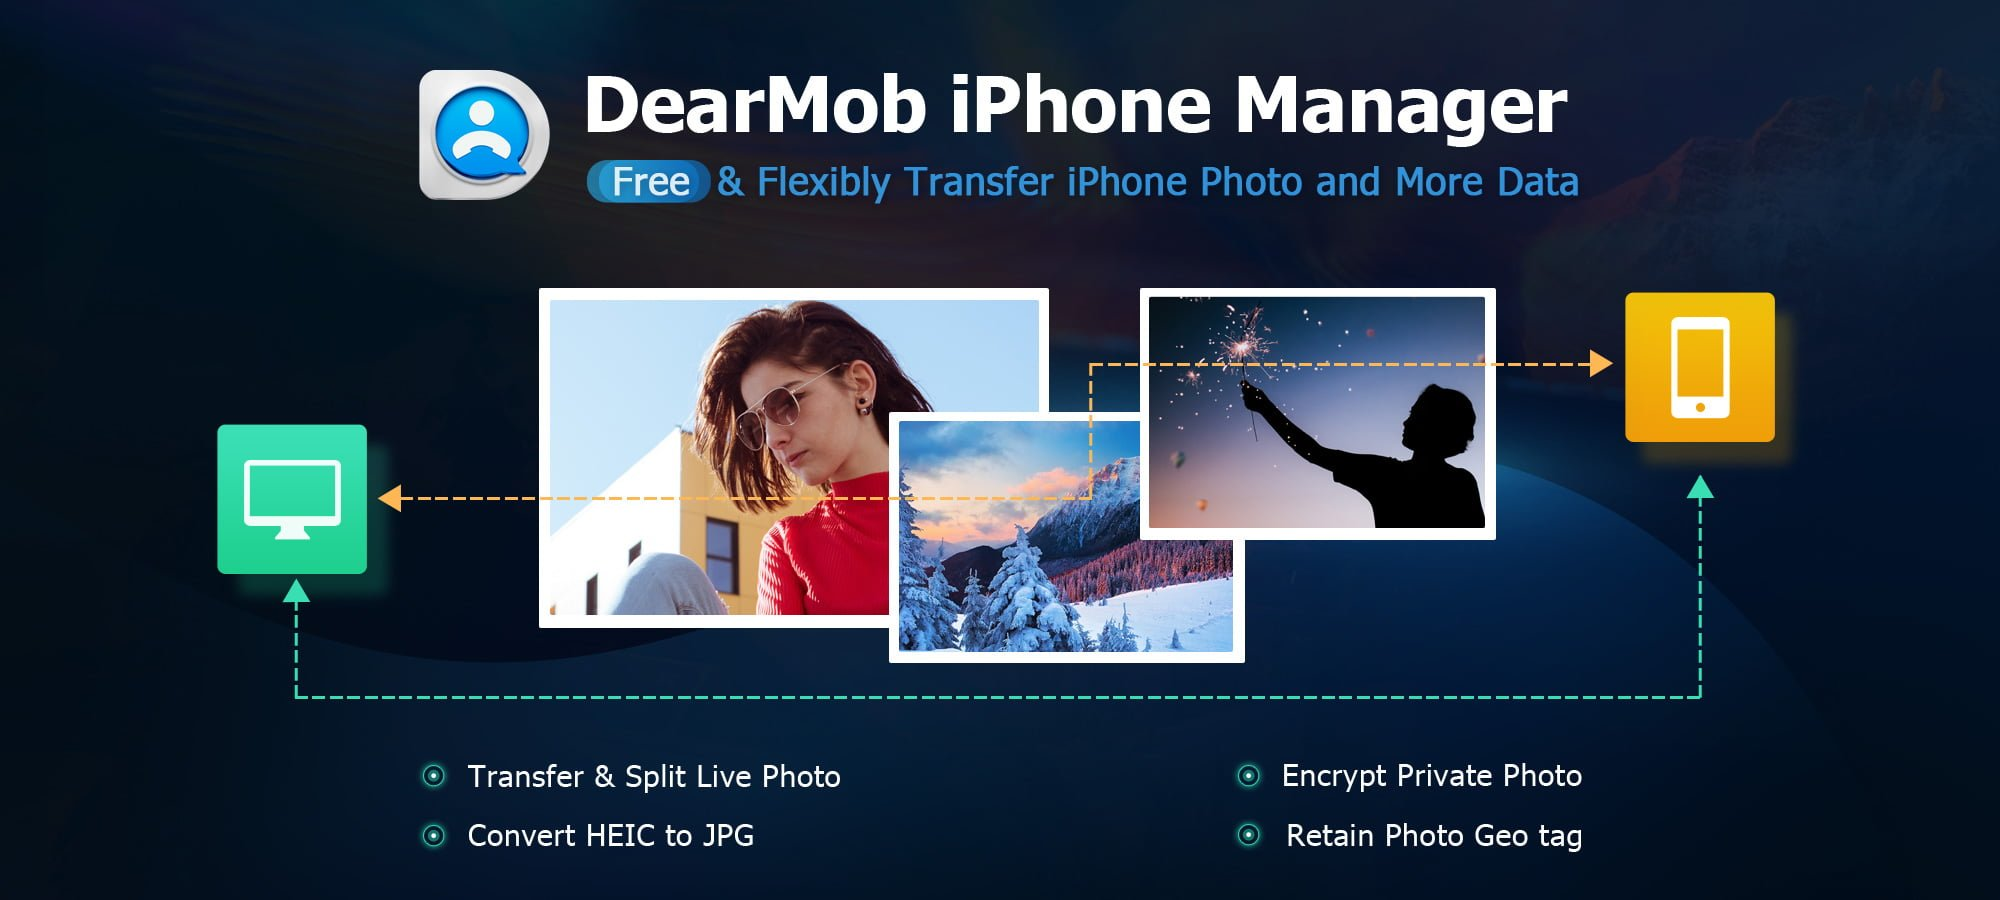 DearMob: iTunes Alternative For Transfering iPhone Photos And Other